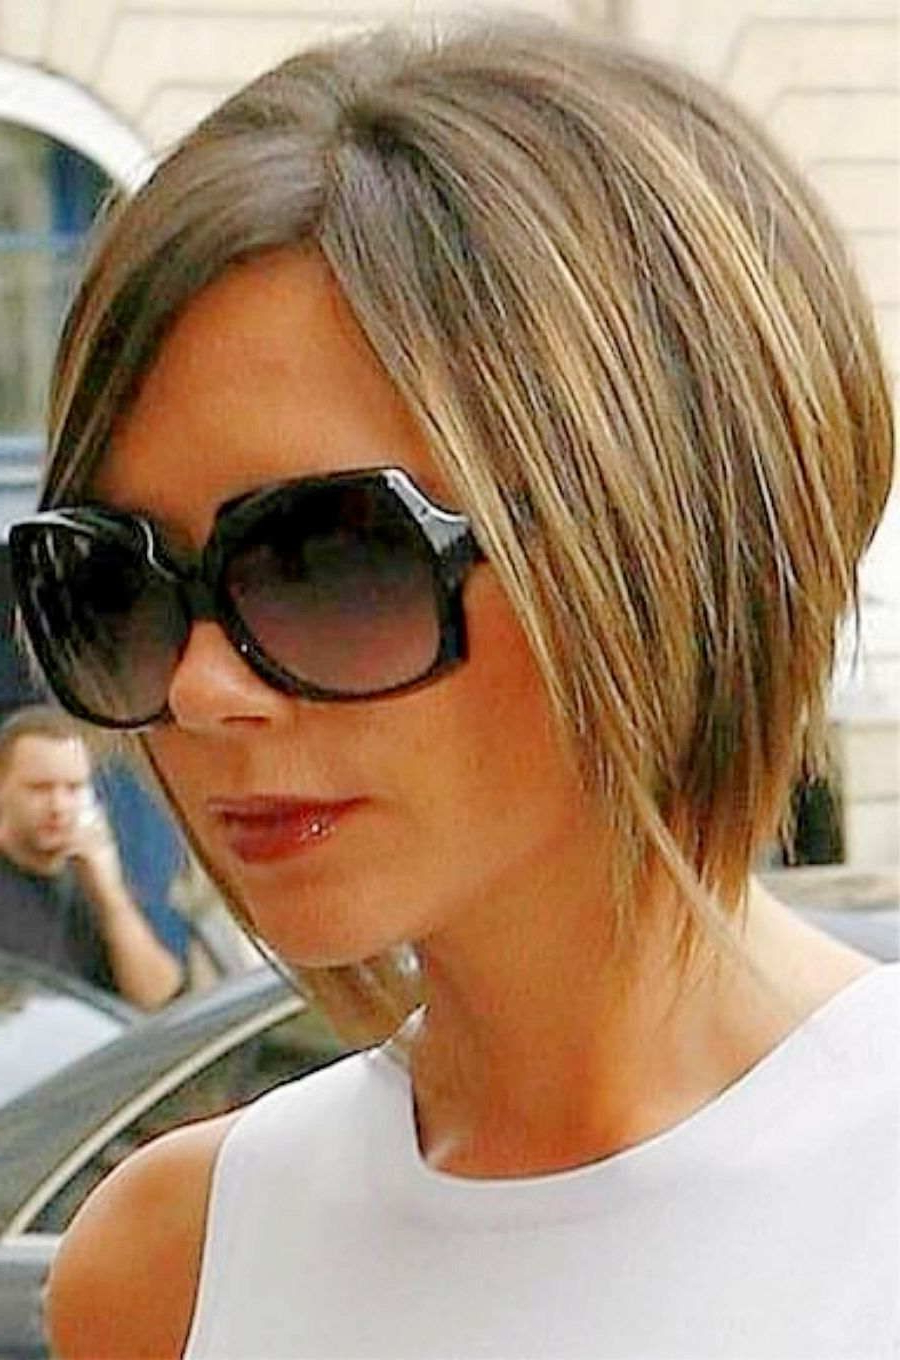 Victoria Beckham Hairstyles Side View | Beckham Bob Haircut Victoria With Regard To Victoria Beckham Short Haircuts (View 15 of 25)